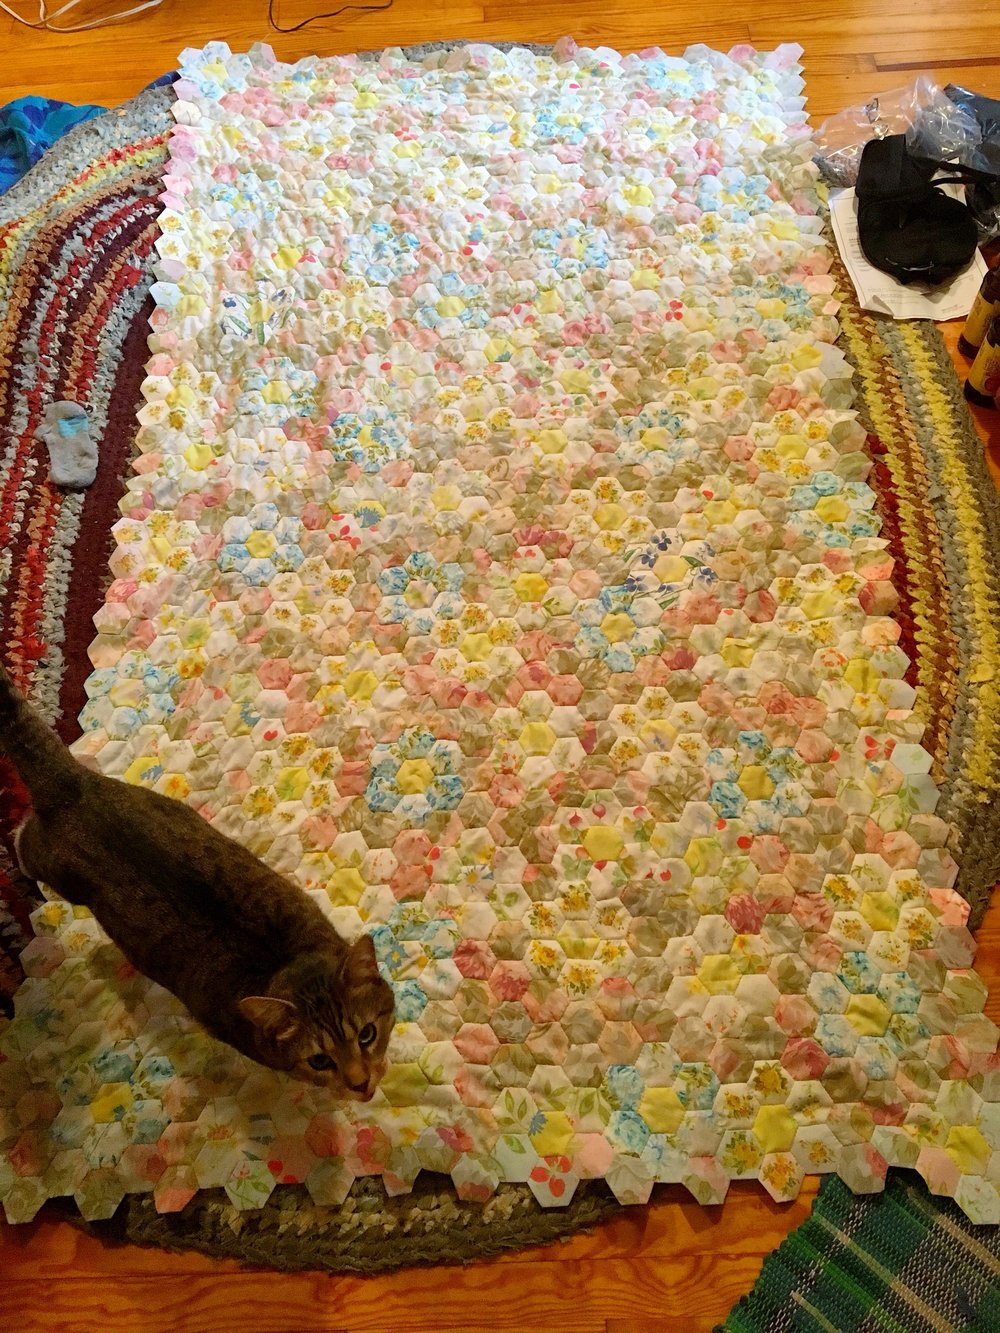 Sewing on the floor with the cat